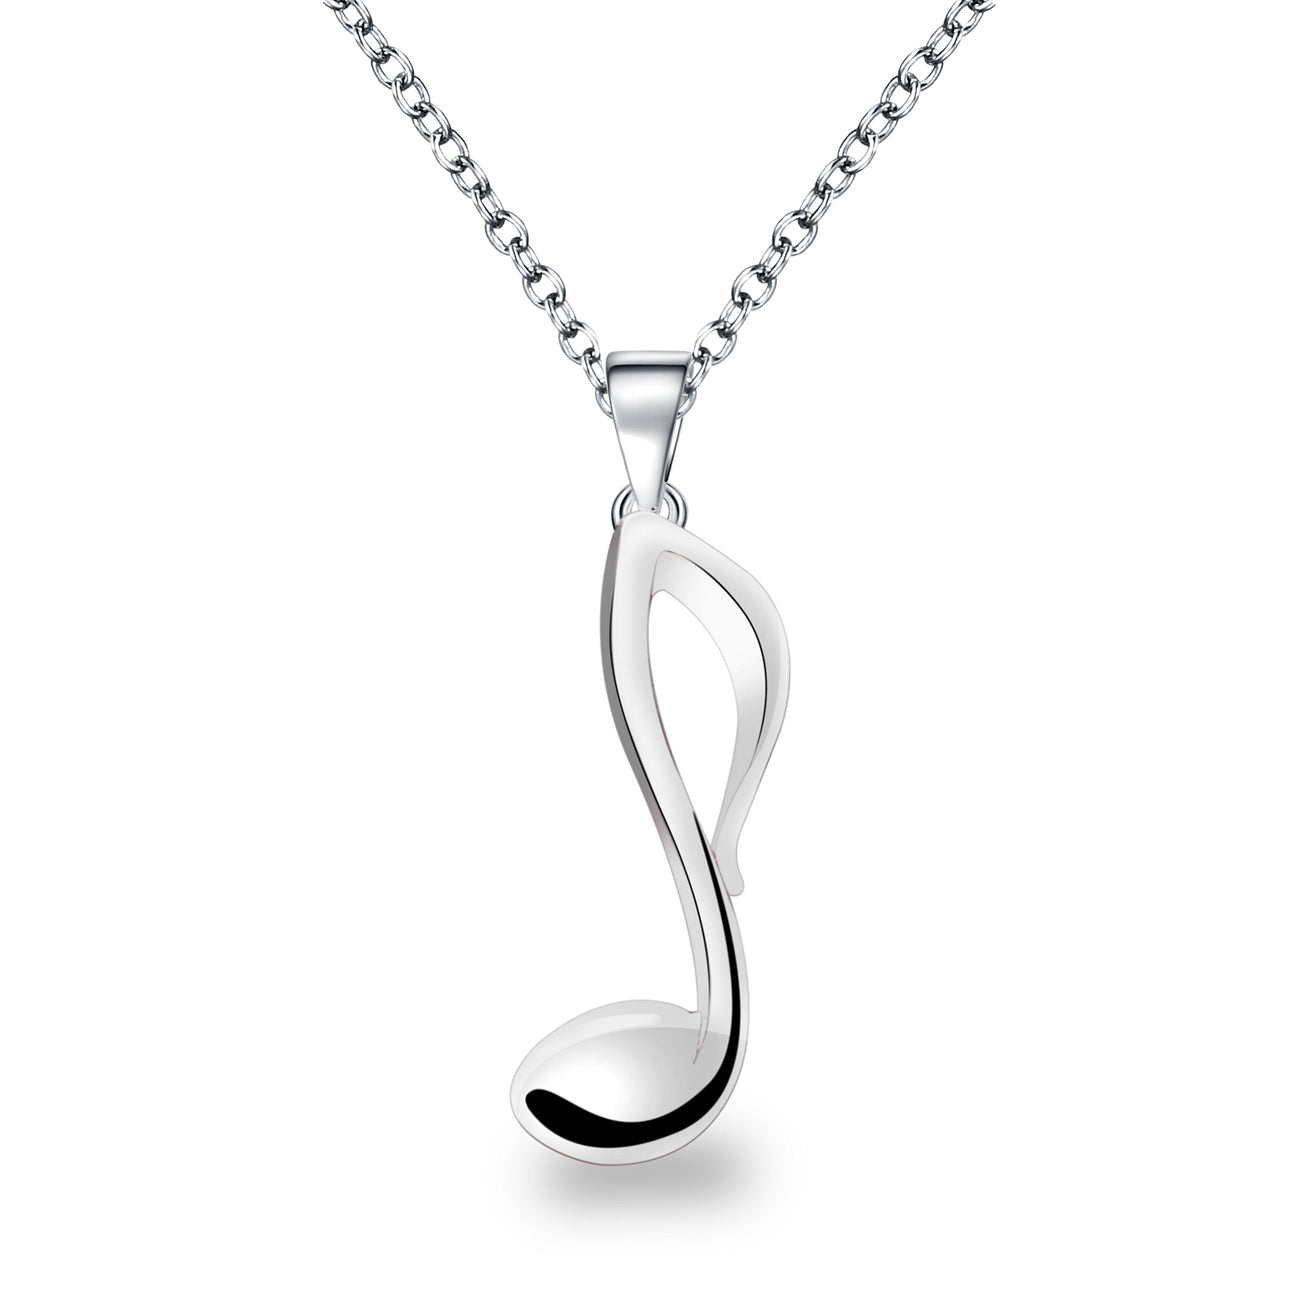 ELEANOR STERLING SILVER NECKLACE